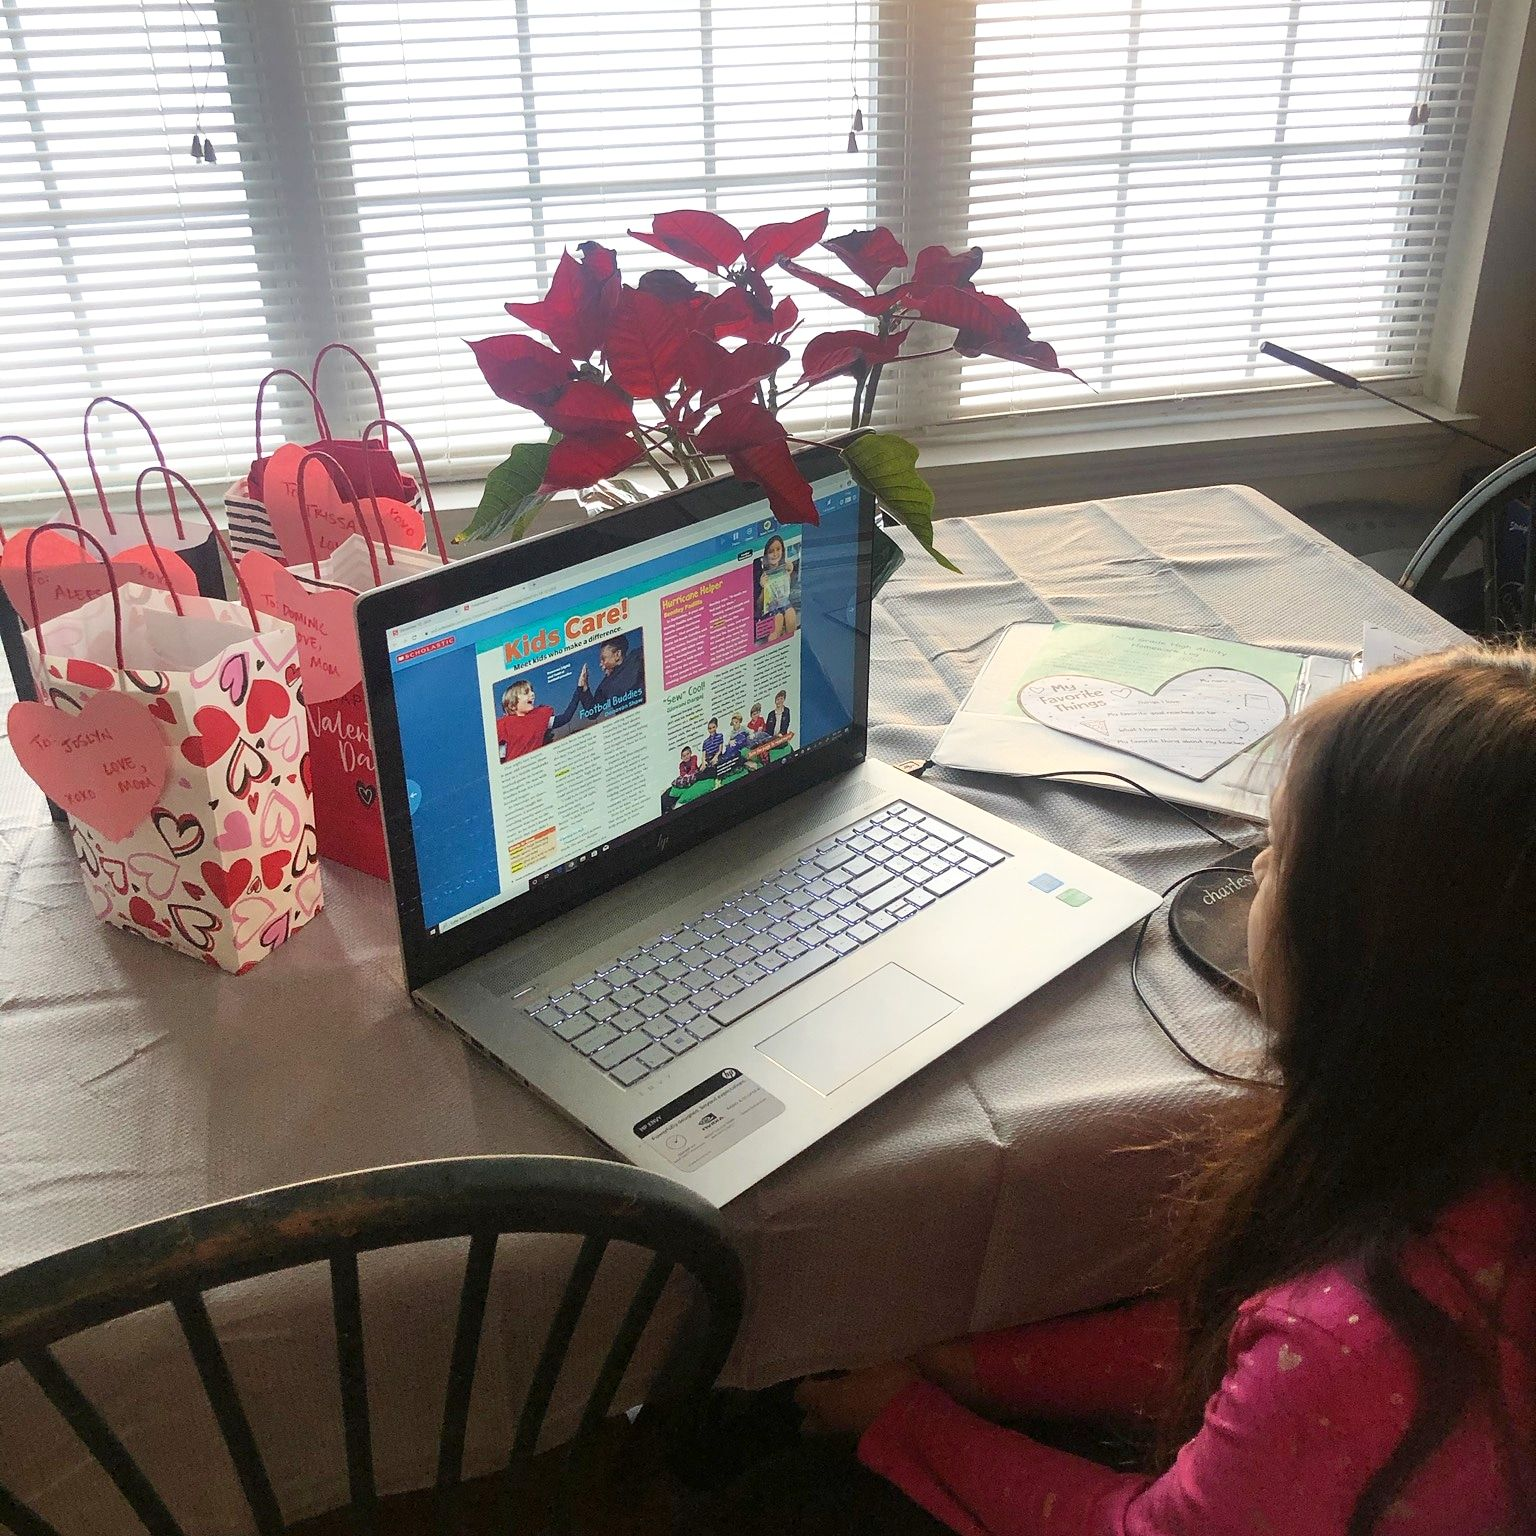 More Ways to Learn and Explore While at Home